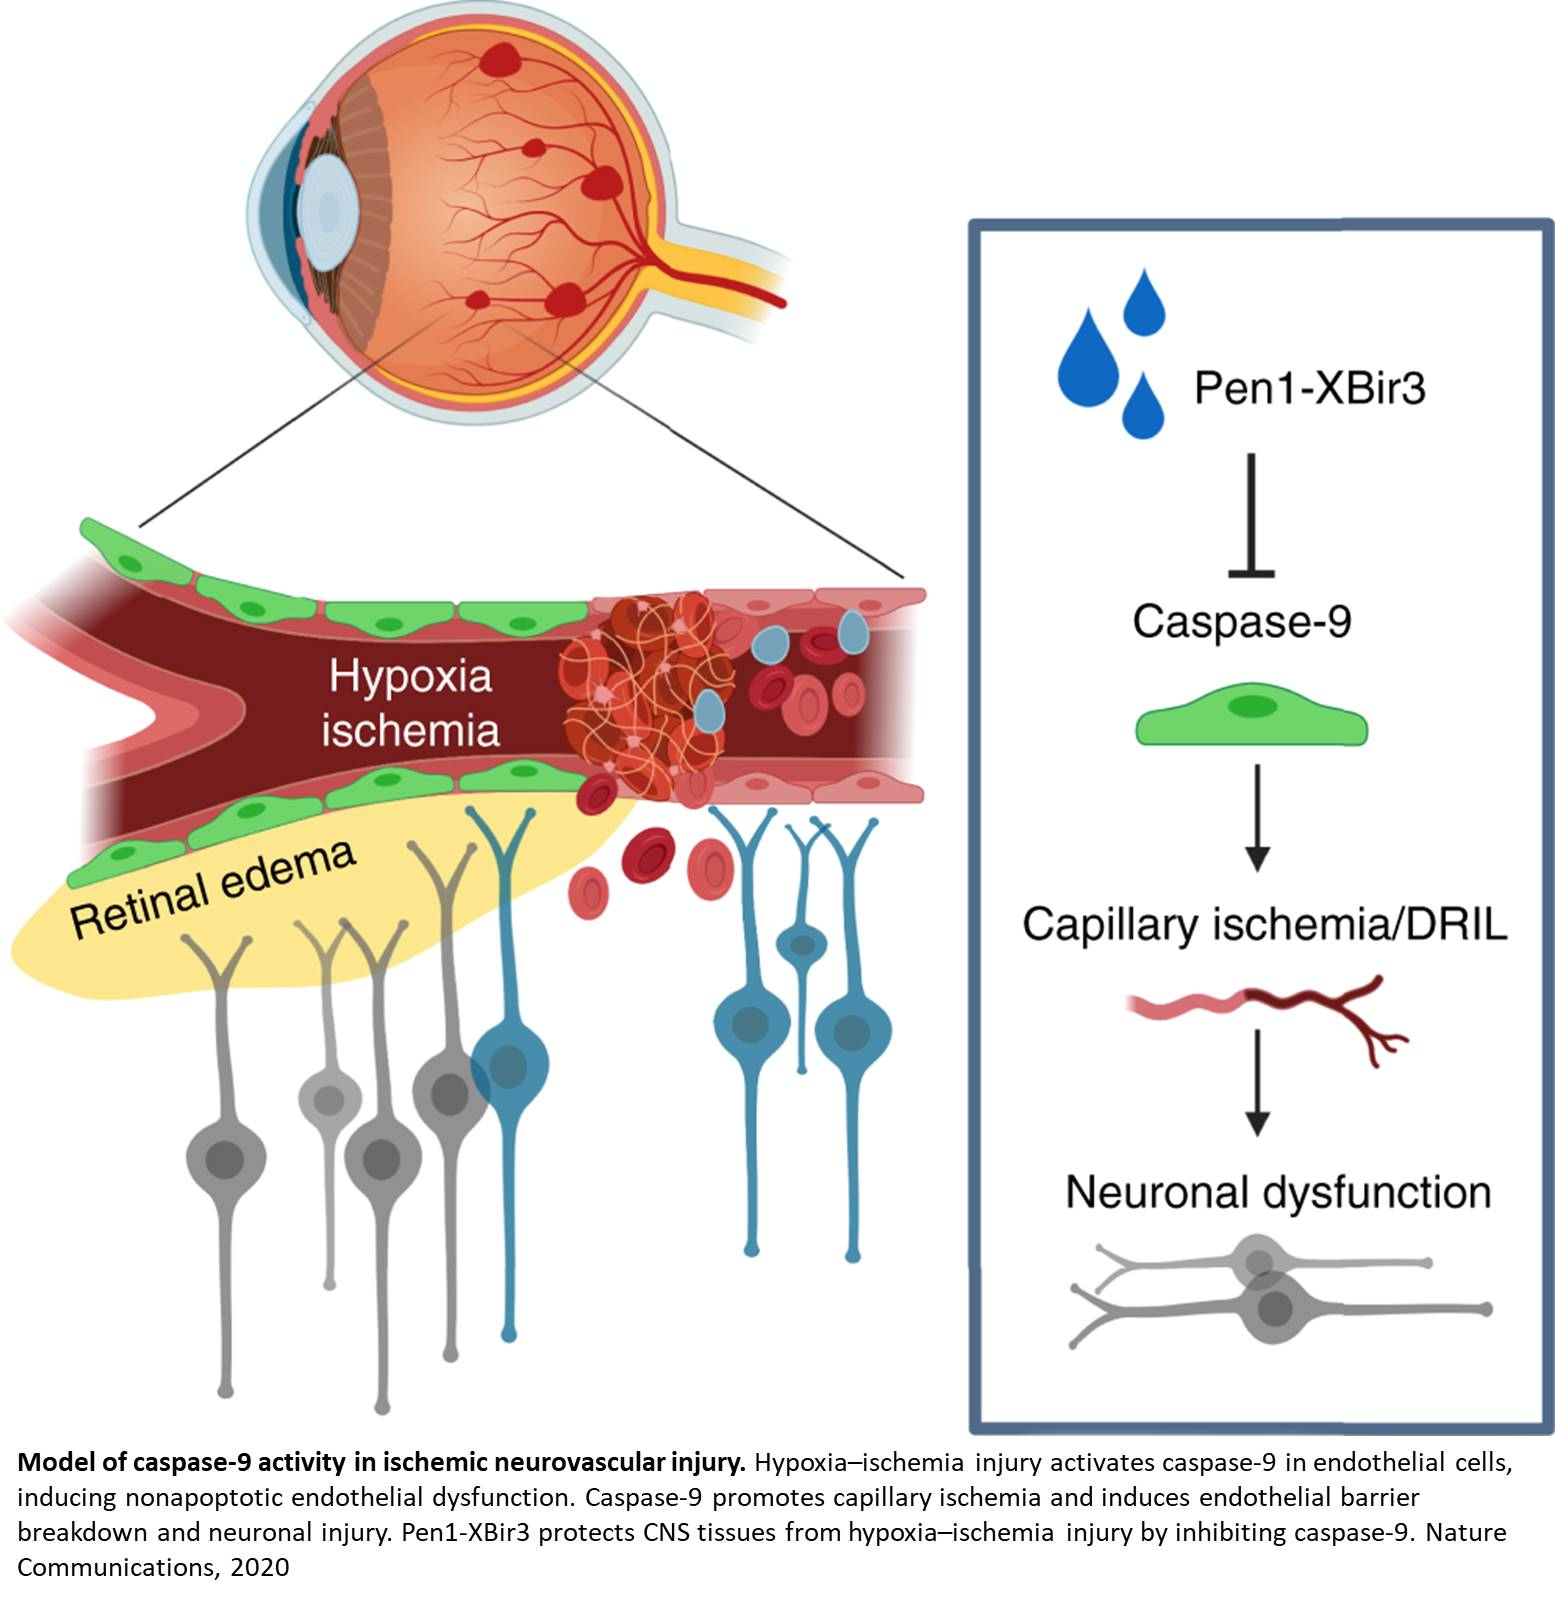 Eye drops with caspase-9 inhibitor prevents a common cause of blindness